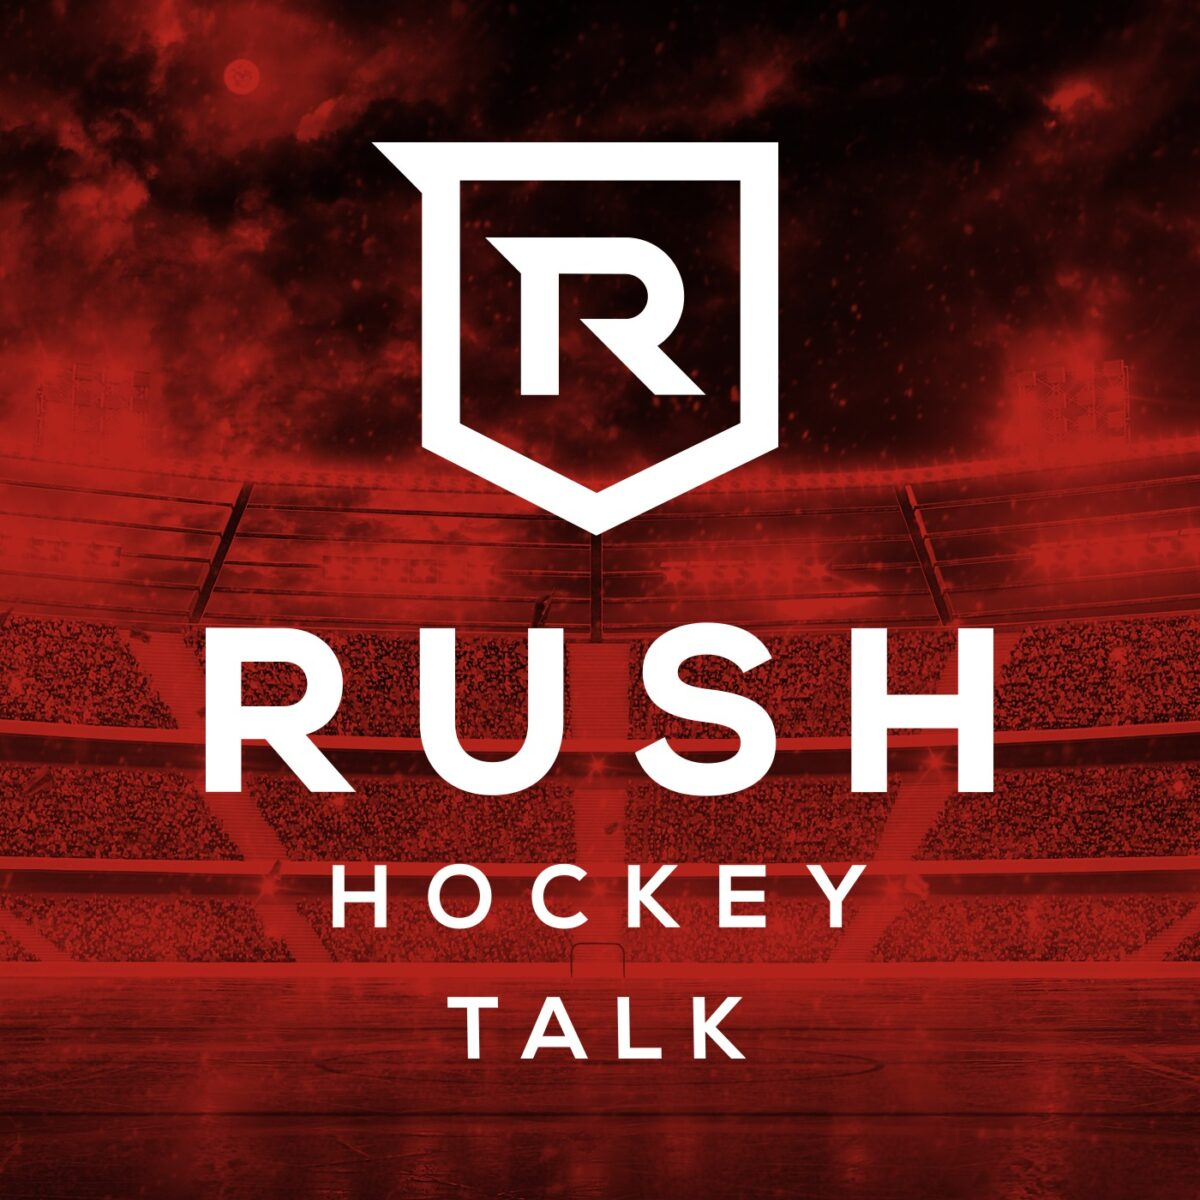 RUSH Hockey Talk